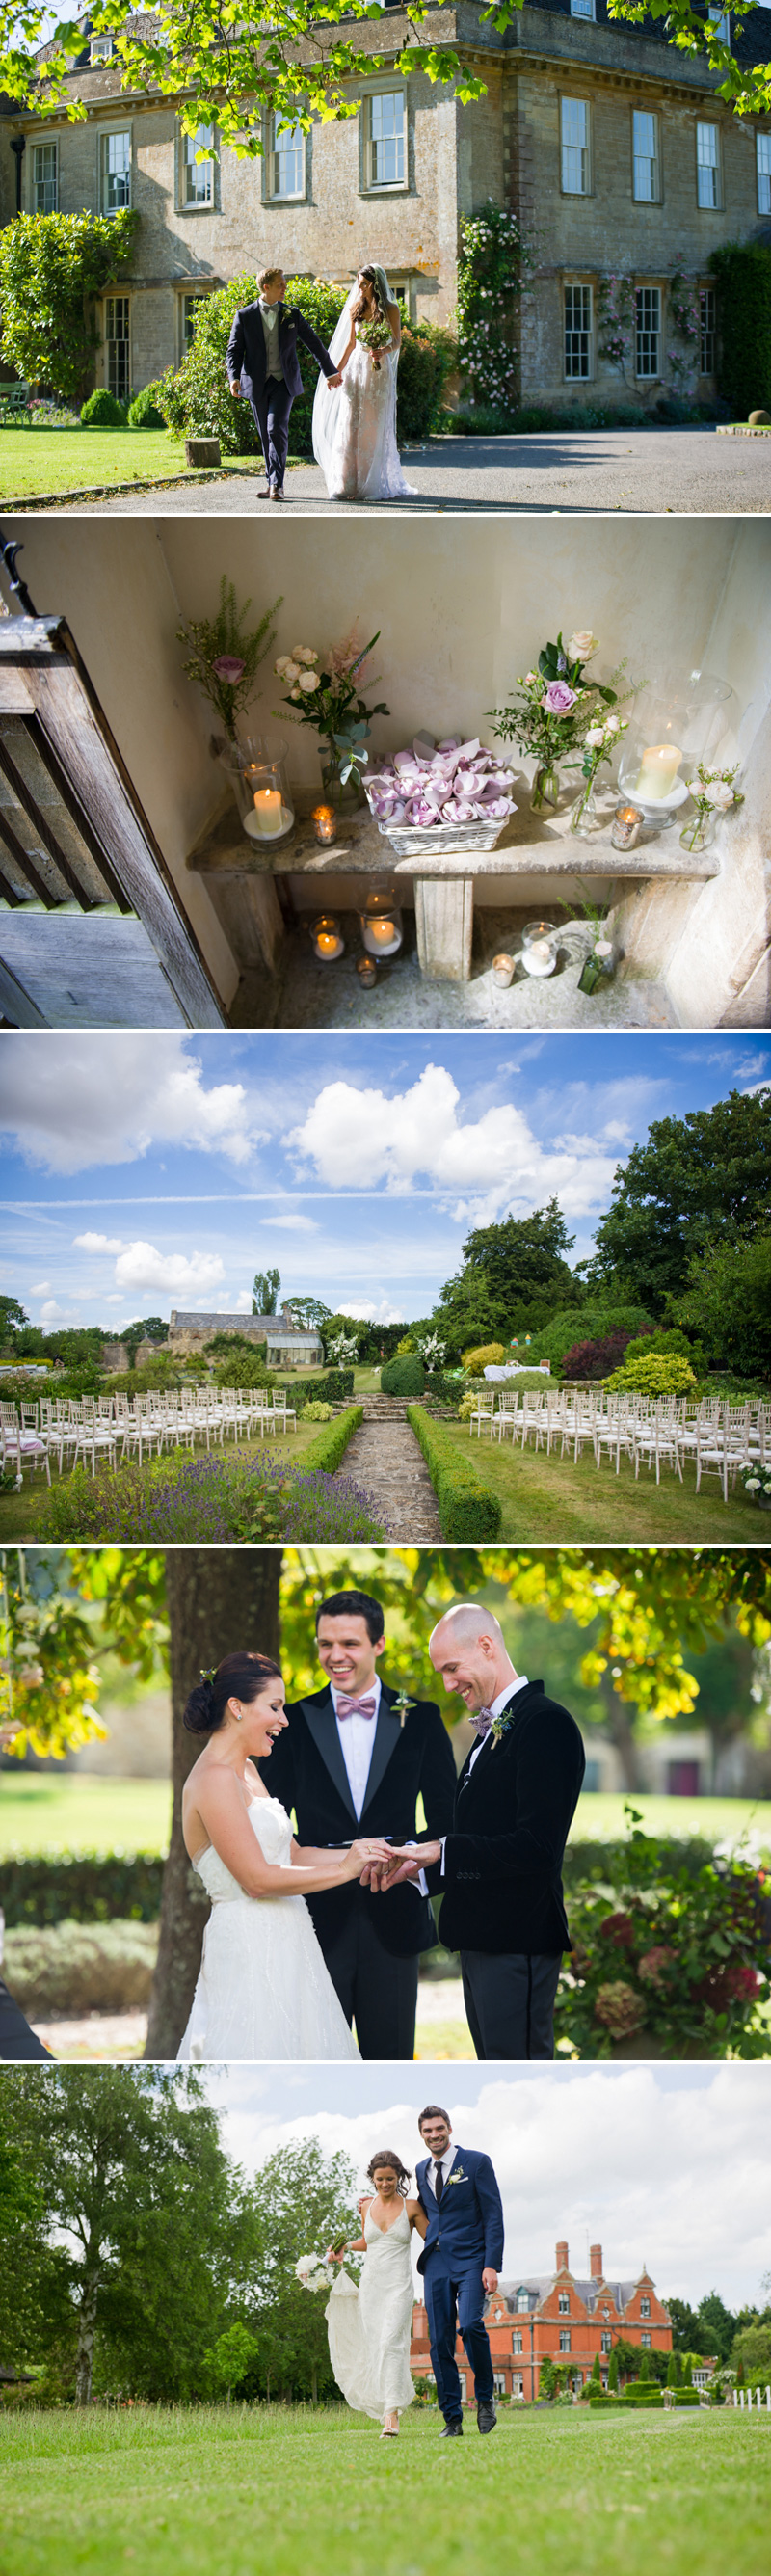 Coco-Wedding-Venues-Especially-Amy-Coco-Blog-Post-layer-3a